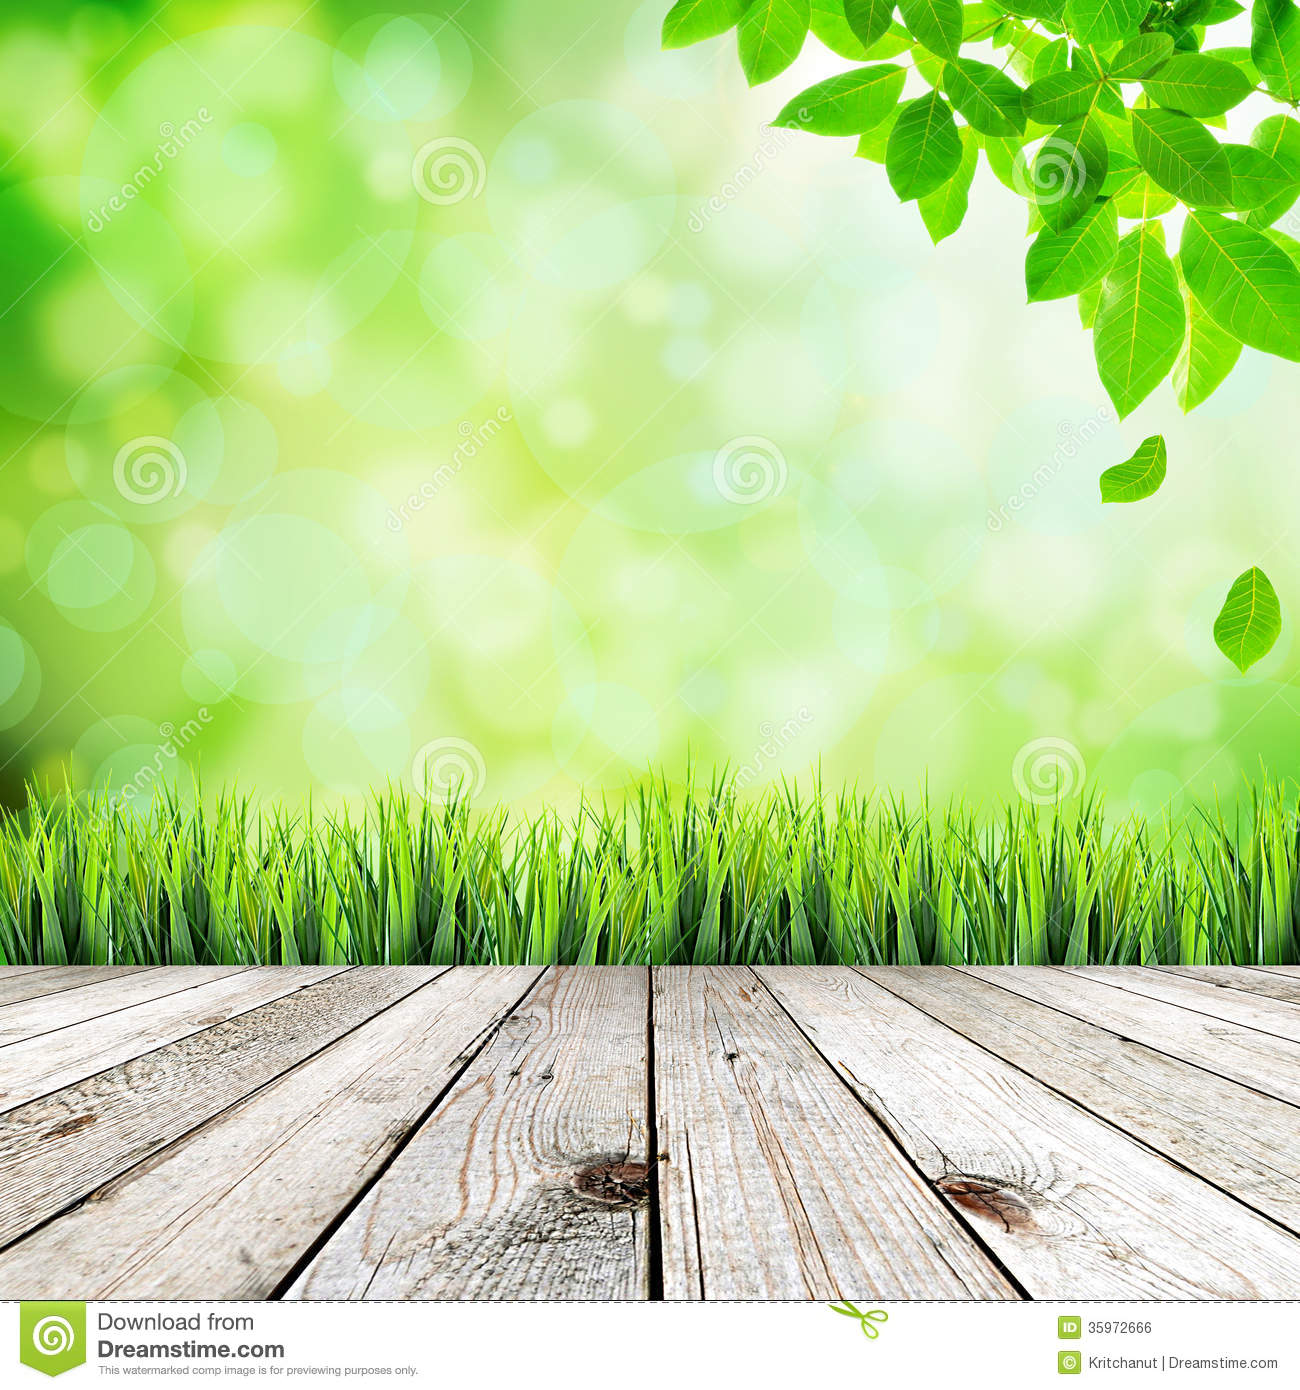 green natural abstract background